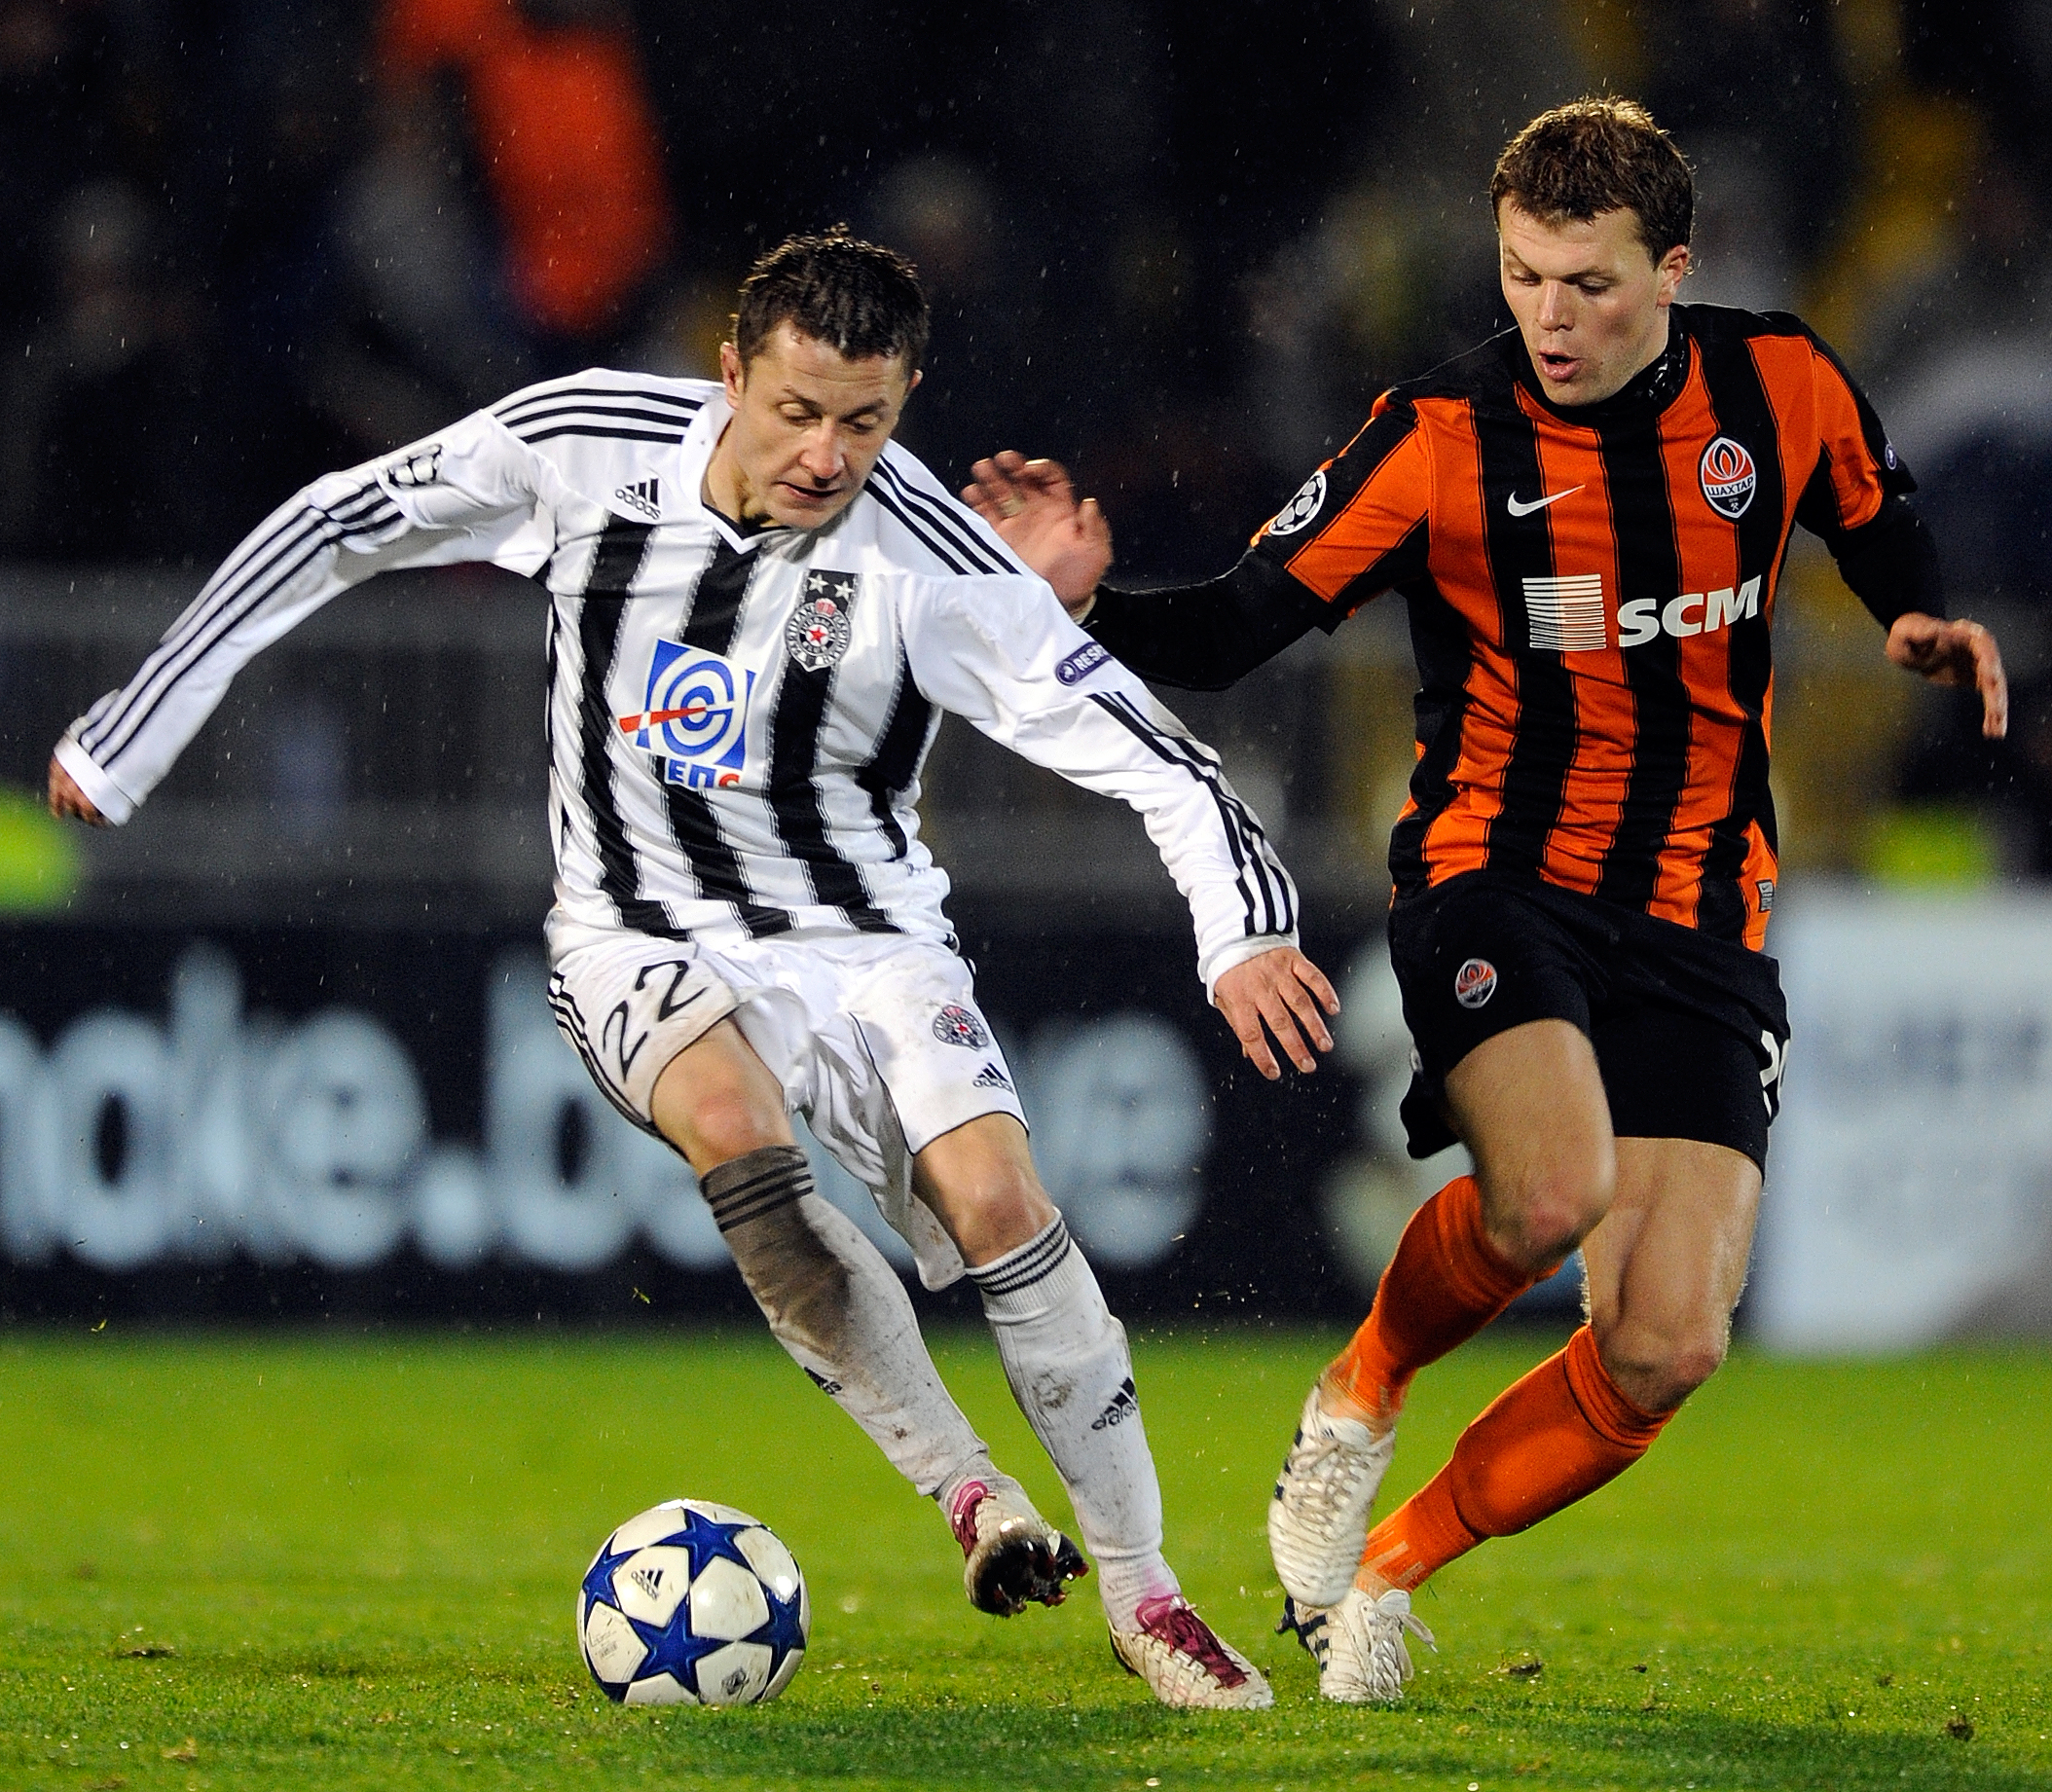 Epl Matches Live On Rcti Indonesia Tv Channel: Partizan VS Sahtjor 2010